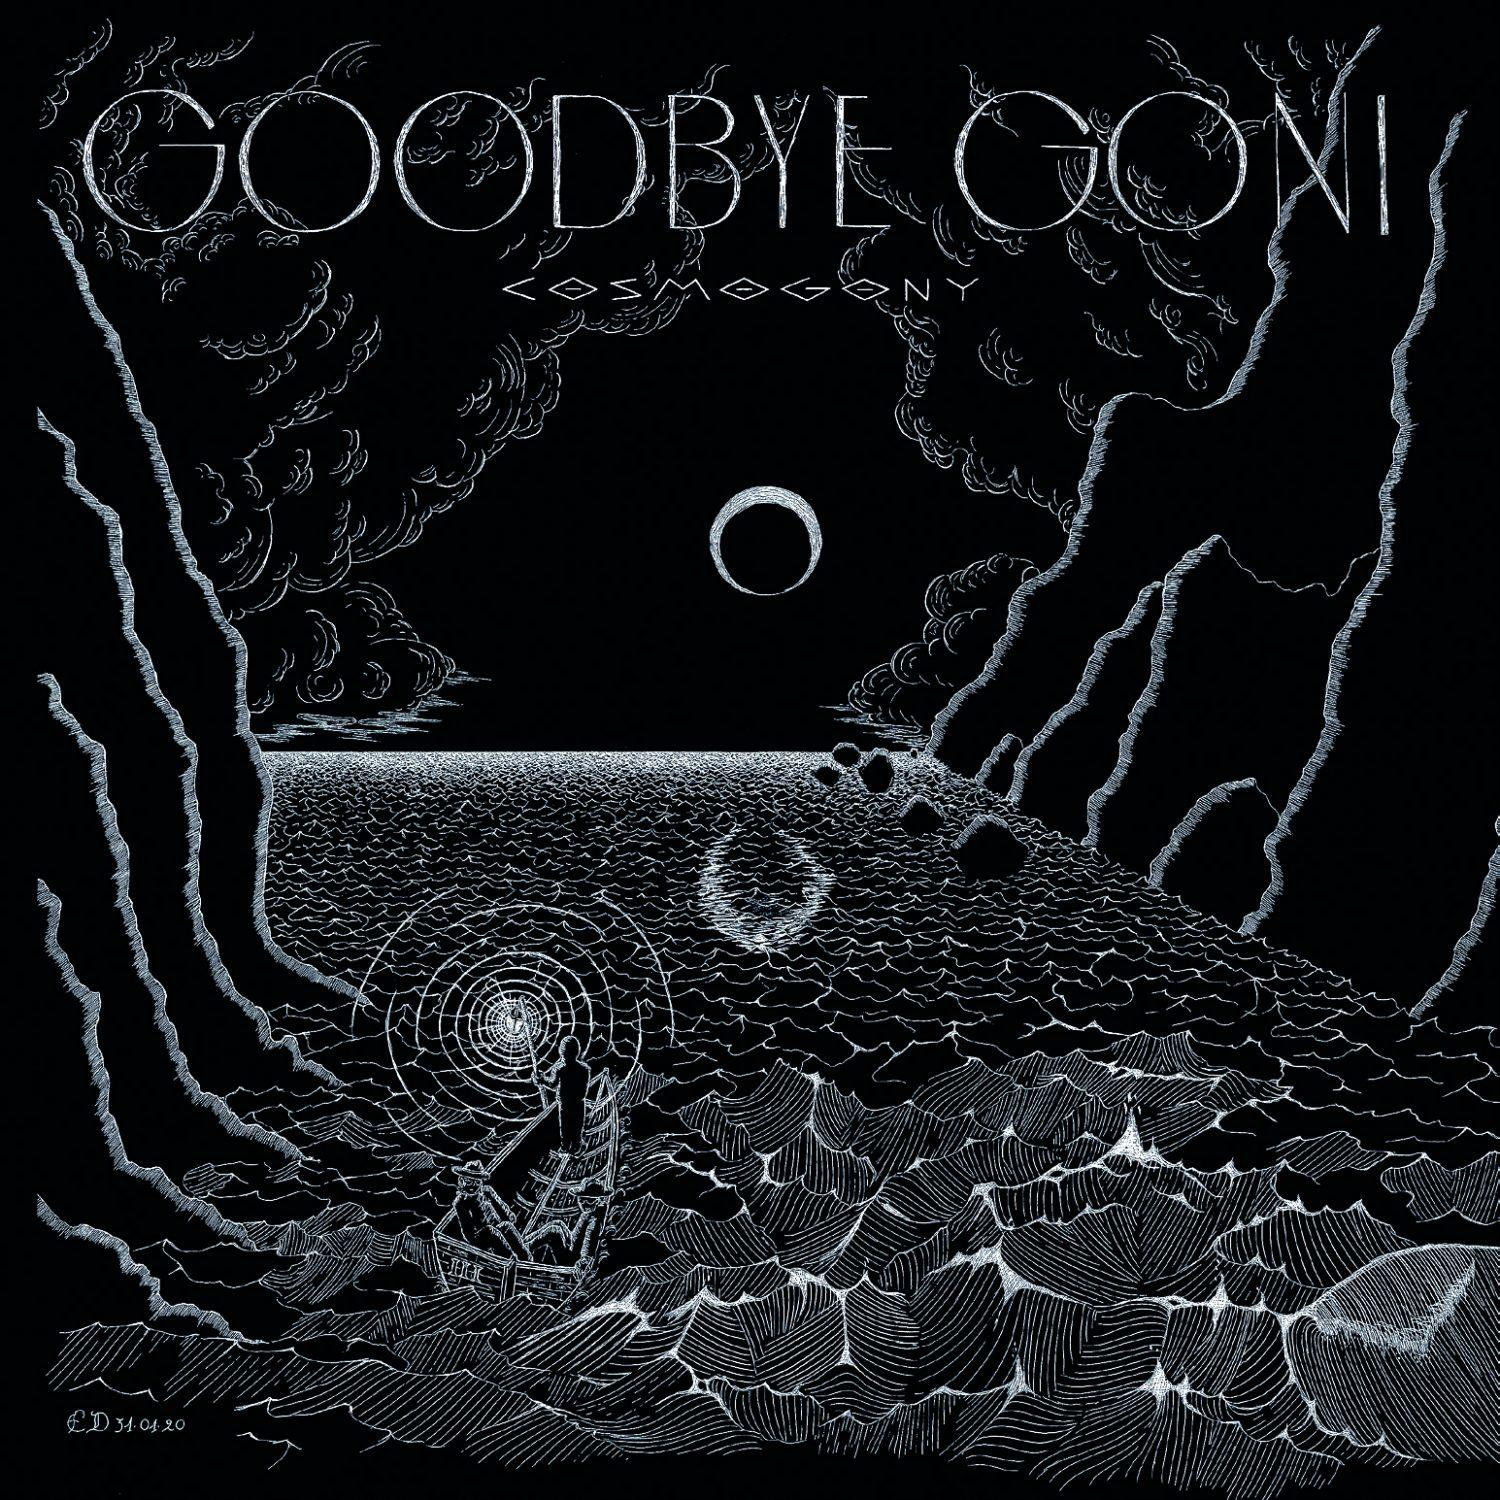 Chronique d'album : GOODBYE GONI (Rock), Cosmogony (2020)